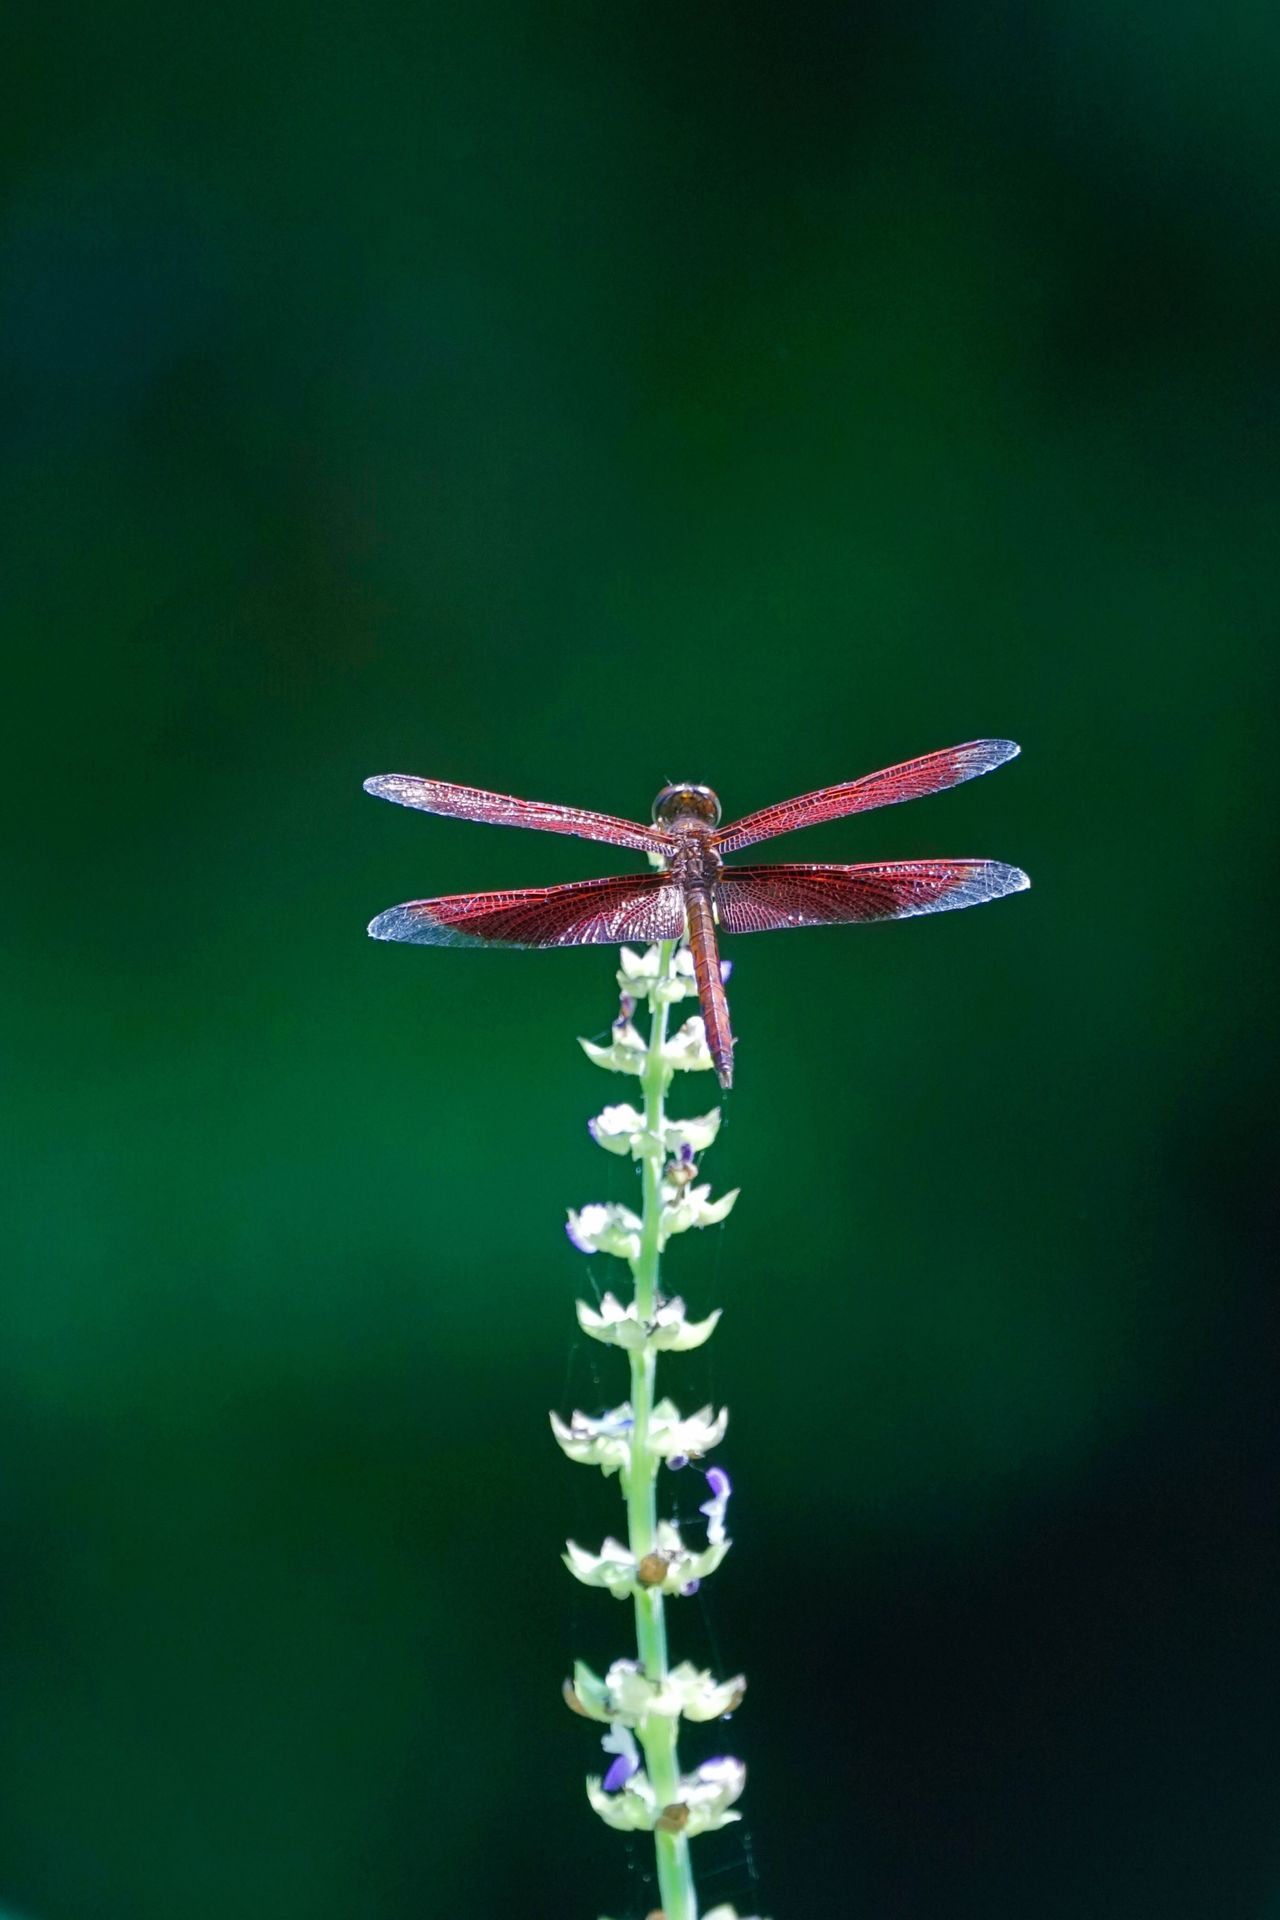 Gragonfly Red Gragonfly Close-up No People Outdoors Beauty In Nature Freshness Wildlife Park Nature Insect Flower Head Green Color